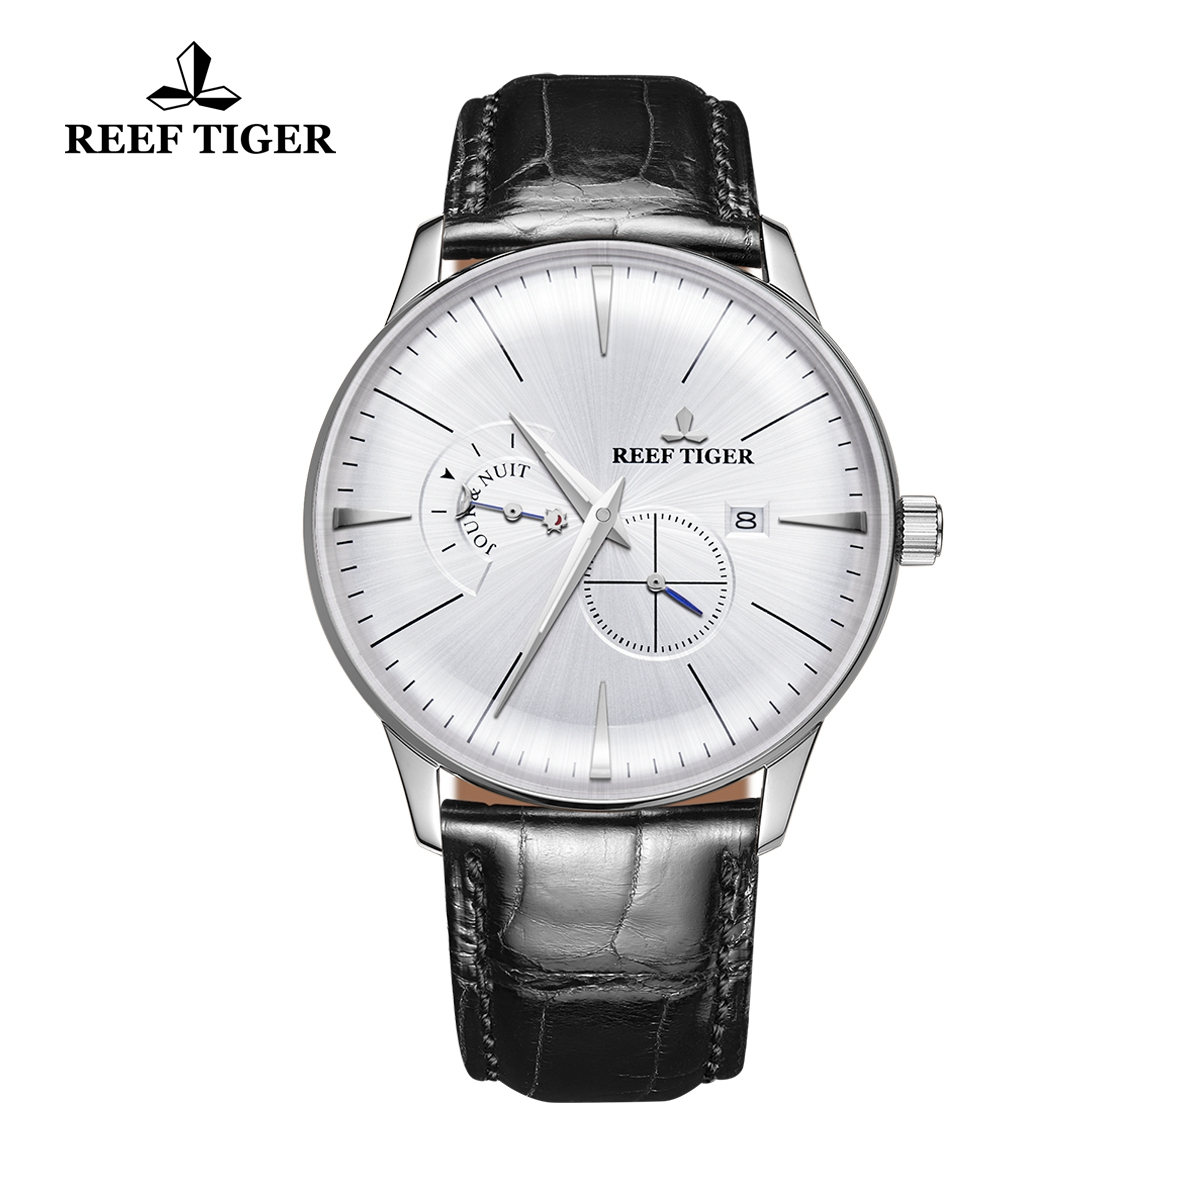 Reef Tiger Classic Artisan Men's Casual Watch White Dial Leather Strap Automatic Watches RGA8219-YWB